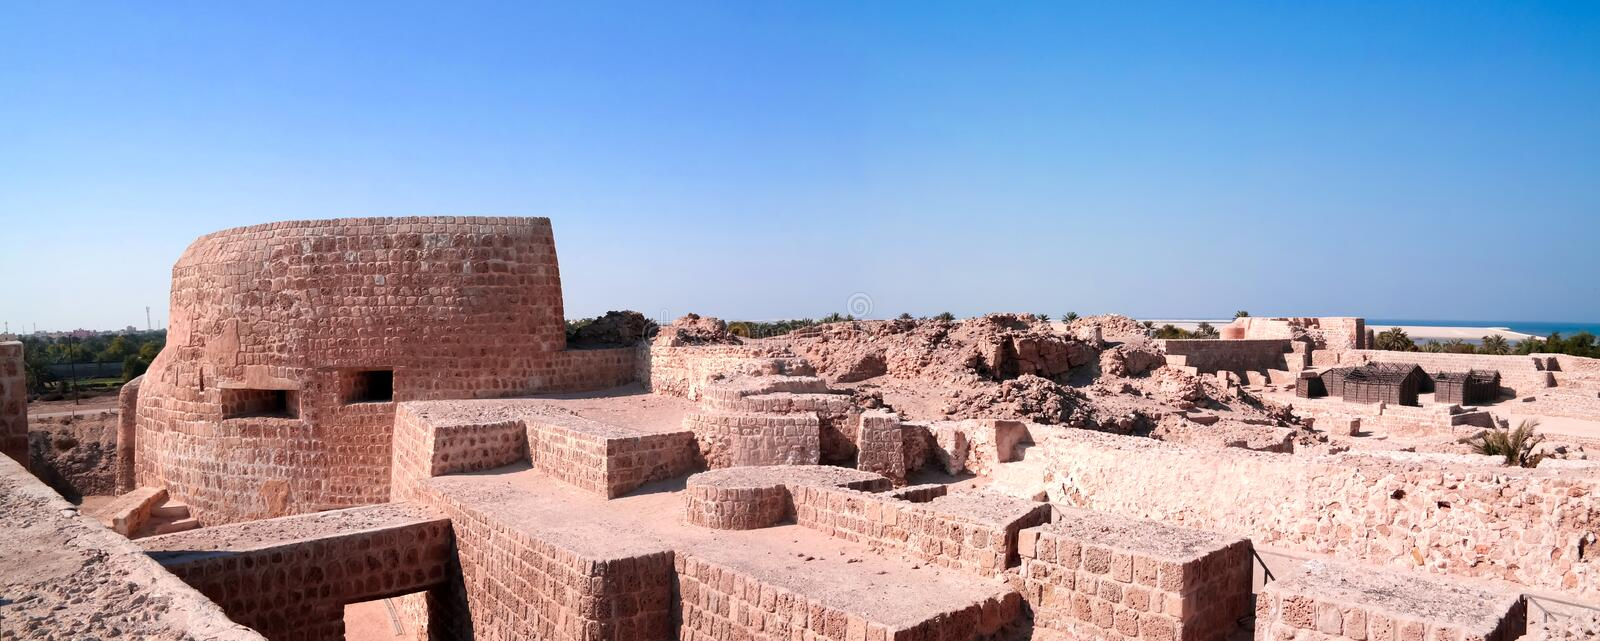 Ruins of Qalat fort near Manama, Bahrain. Ruins of Qalat fort near Manama in Bahrain royalty free stock photo